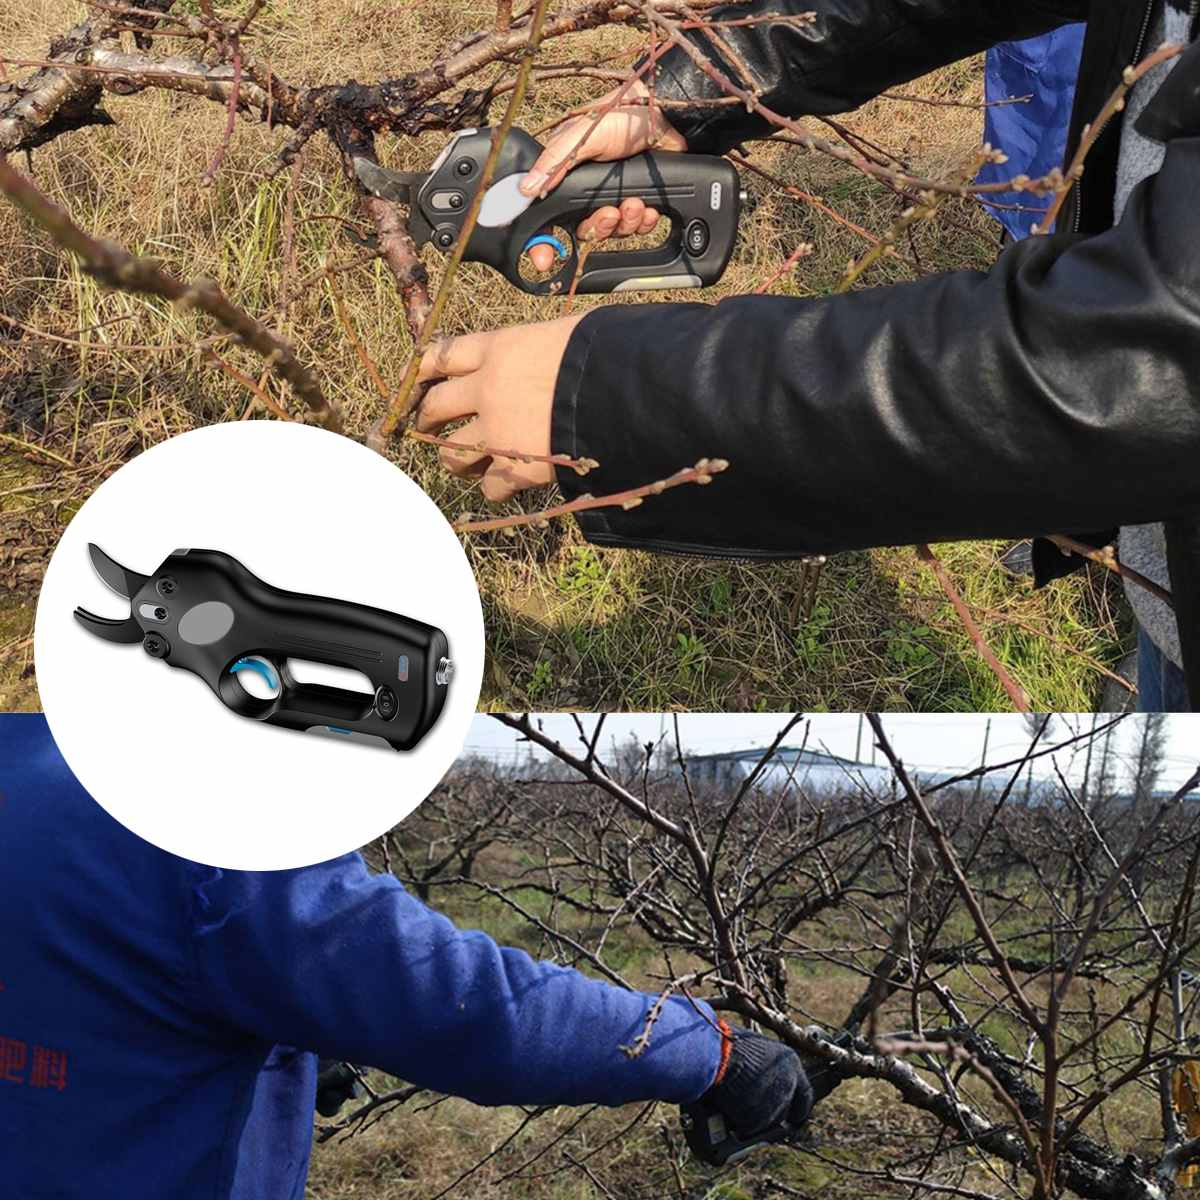 12V Wireless Electric Rechargeable Garden Scissors for Pruning Branches and stems with 4 Li-ion Battery 2